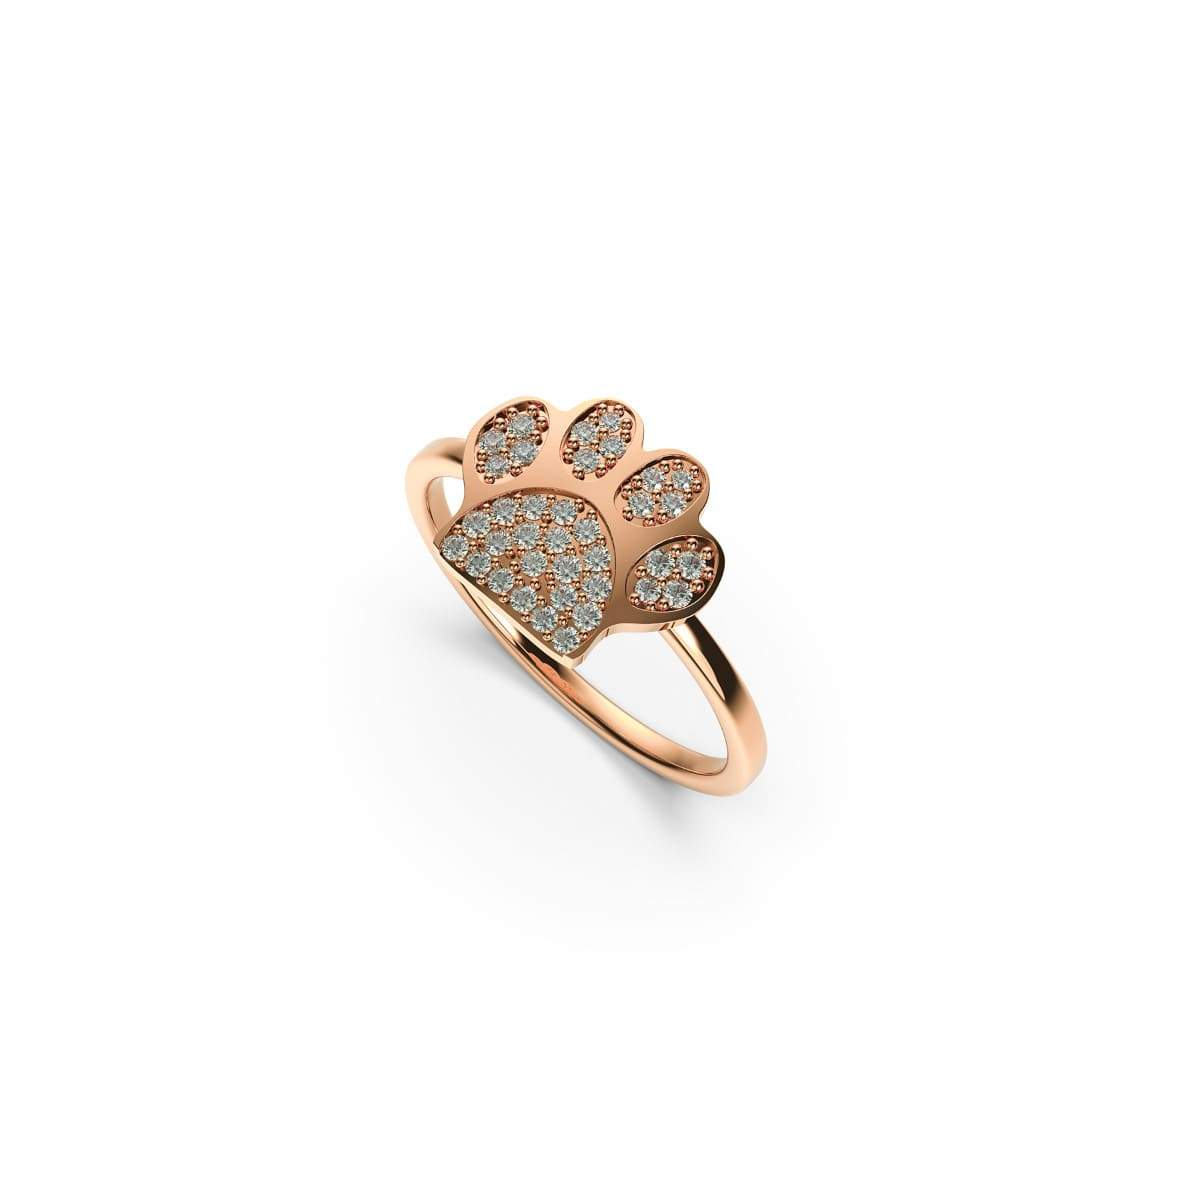 Paw | 18k Rose Gold Vermeil | .925 Sterling Silver | Cubic Zirconia Crystal Pup Print Ring